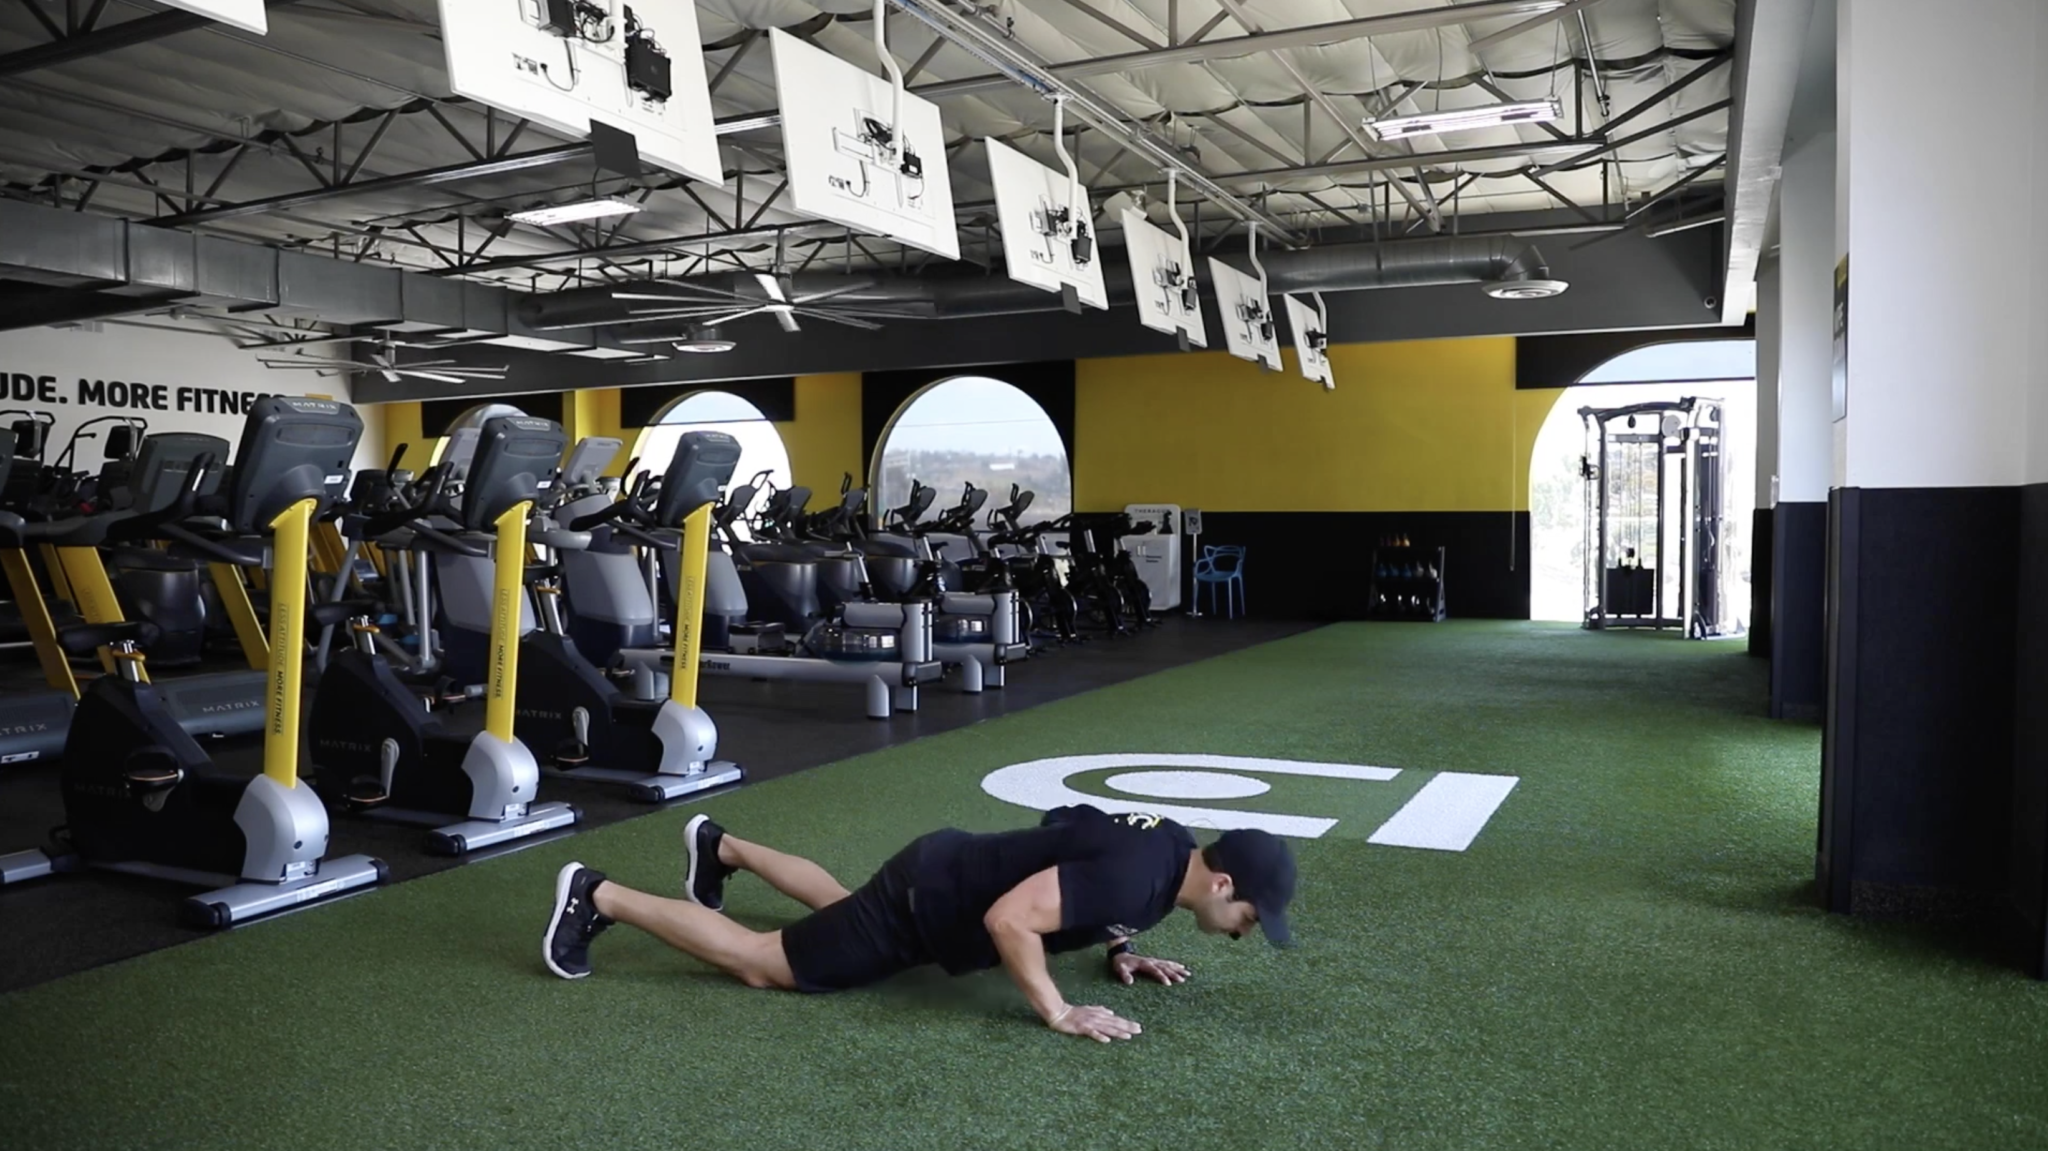 Coach Anthony showing how to do the tricep pushup from your knees after you've started on your toes. Drop your knees to the floor and continue with your hands under your chest.